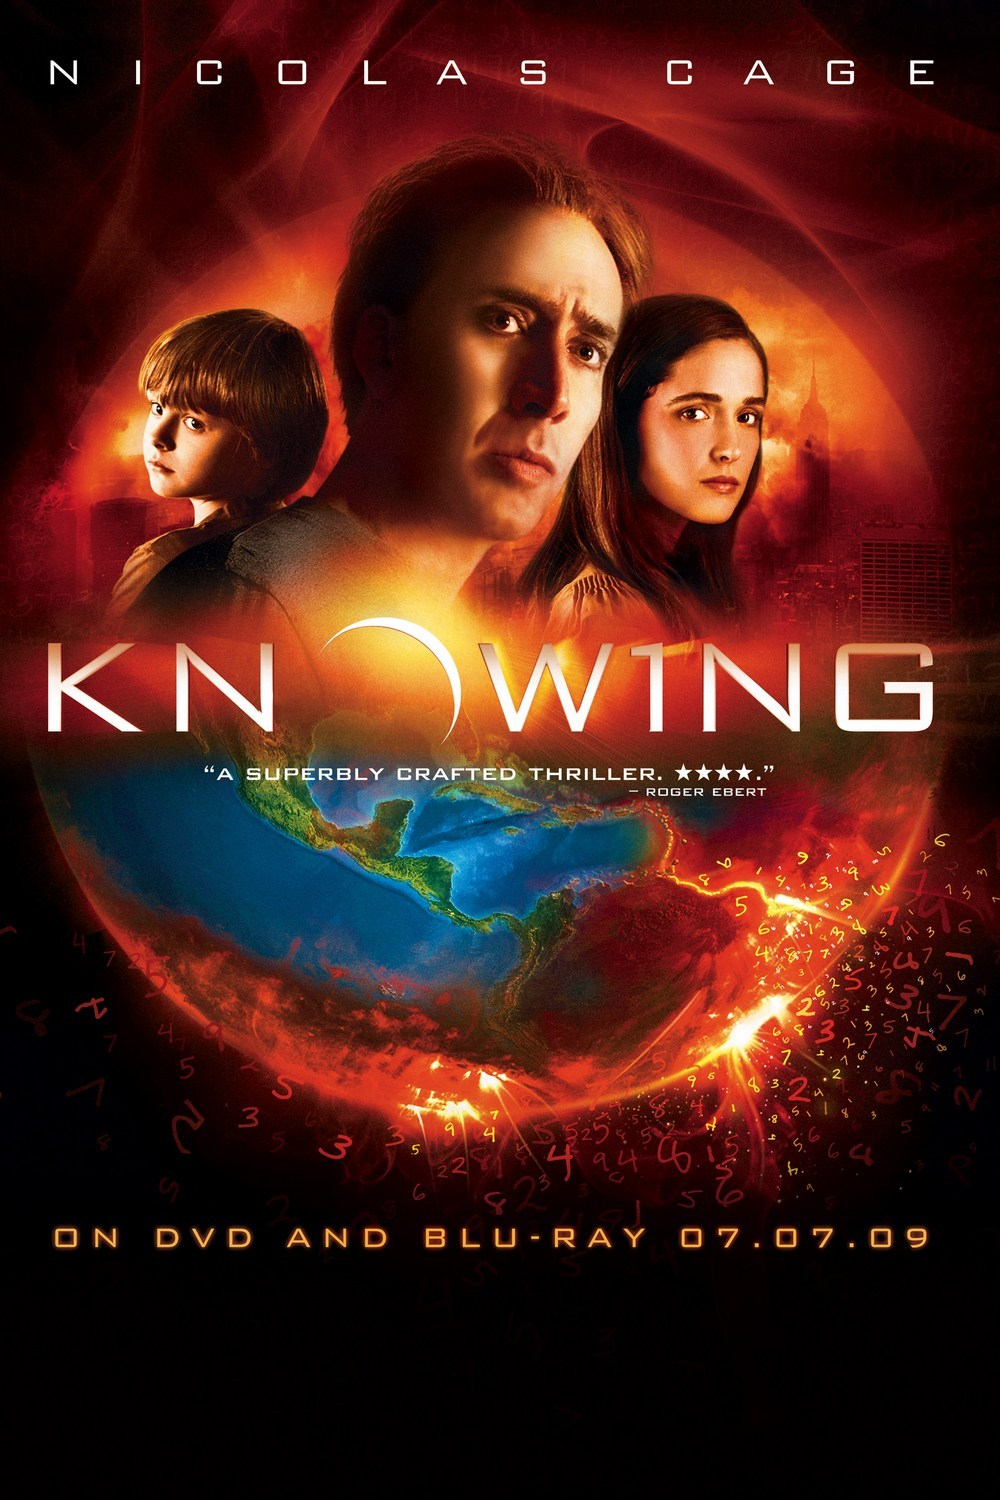 Knowing Movie The Movies Database: [...